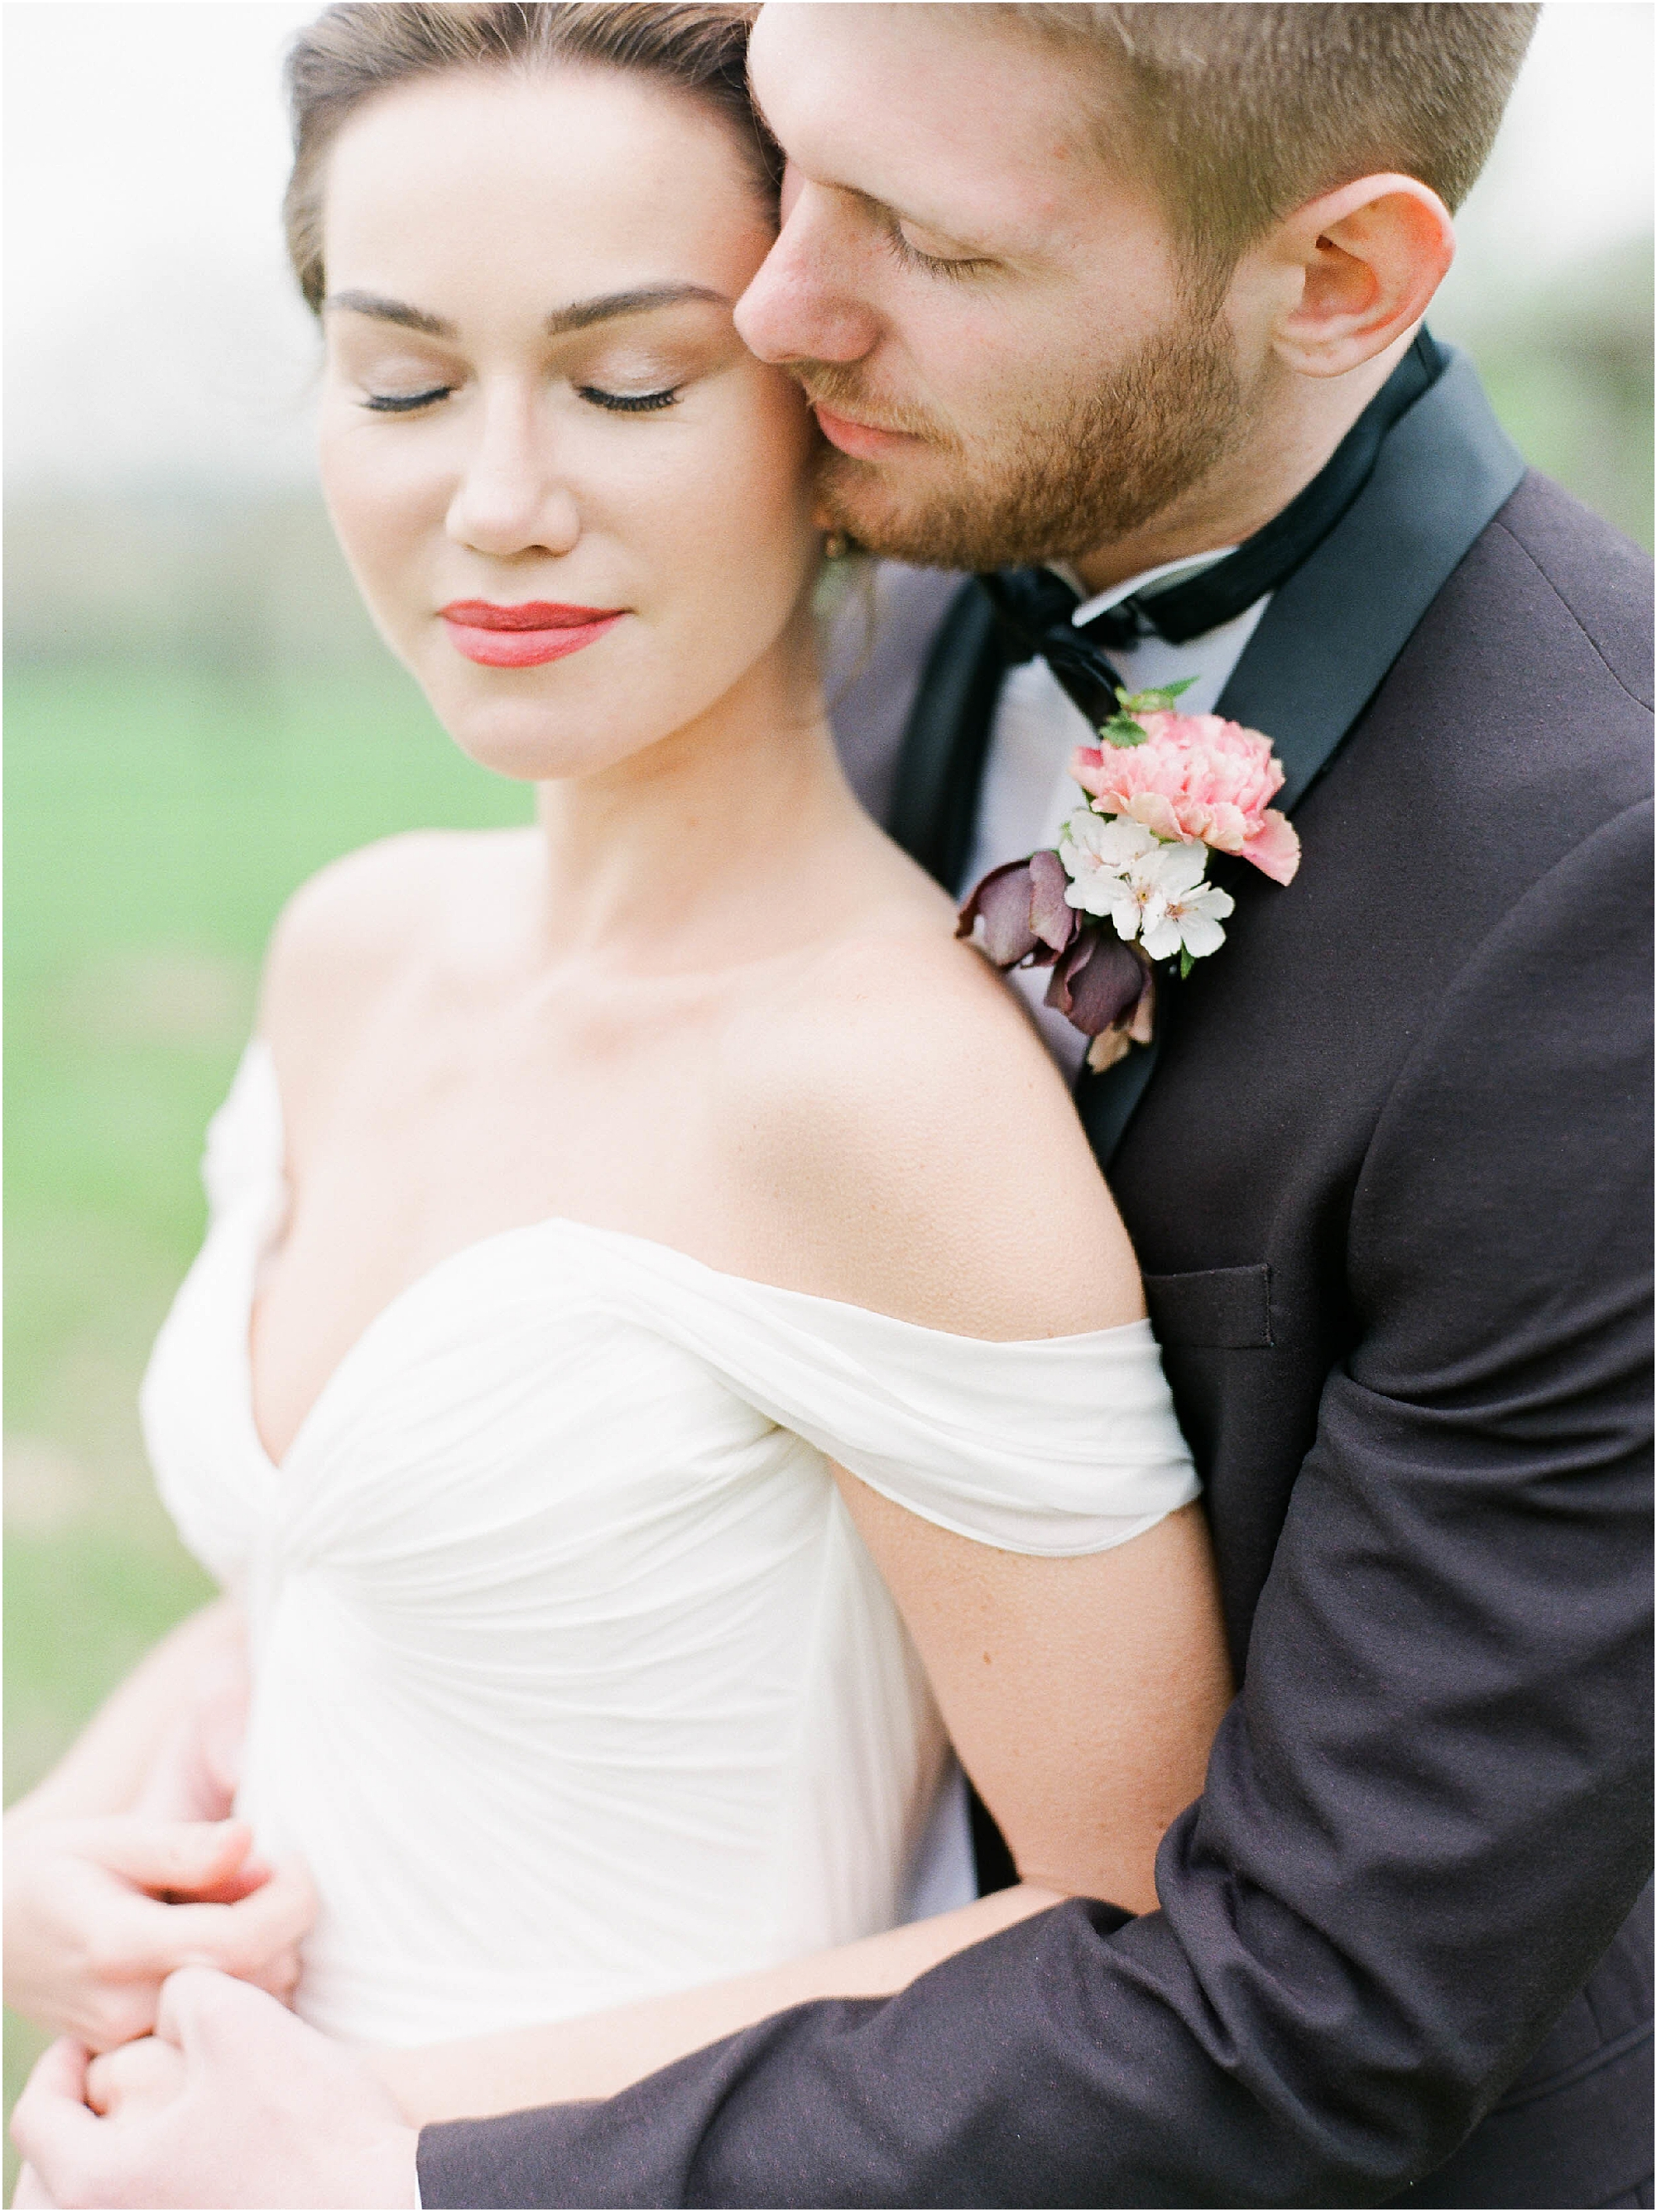 Bride and Groom in tender embrace by film wedding photographer Camilla Arnhold